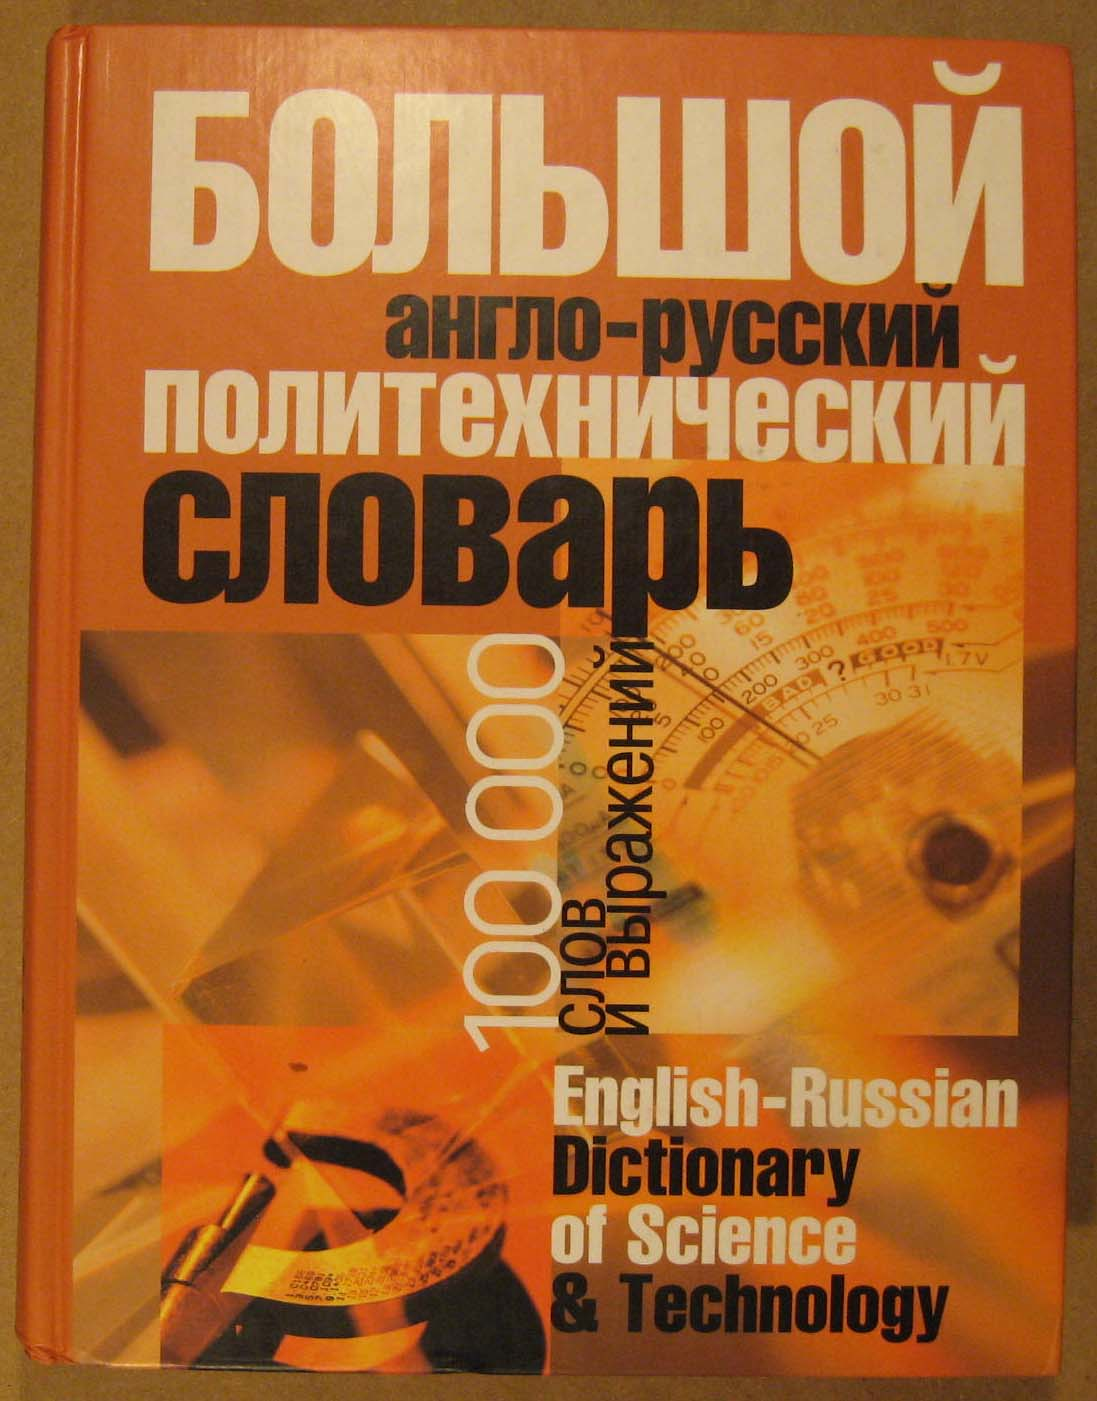 Image for English-Russian Dictionary of Science & Technology / Bolshoi Anglo-Russkii Politekhnicheskii Slovar: 100 000 Slov I Vyrazhenii